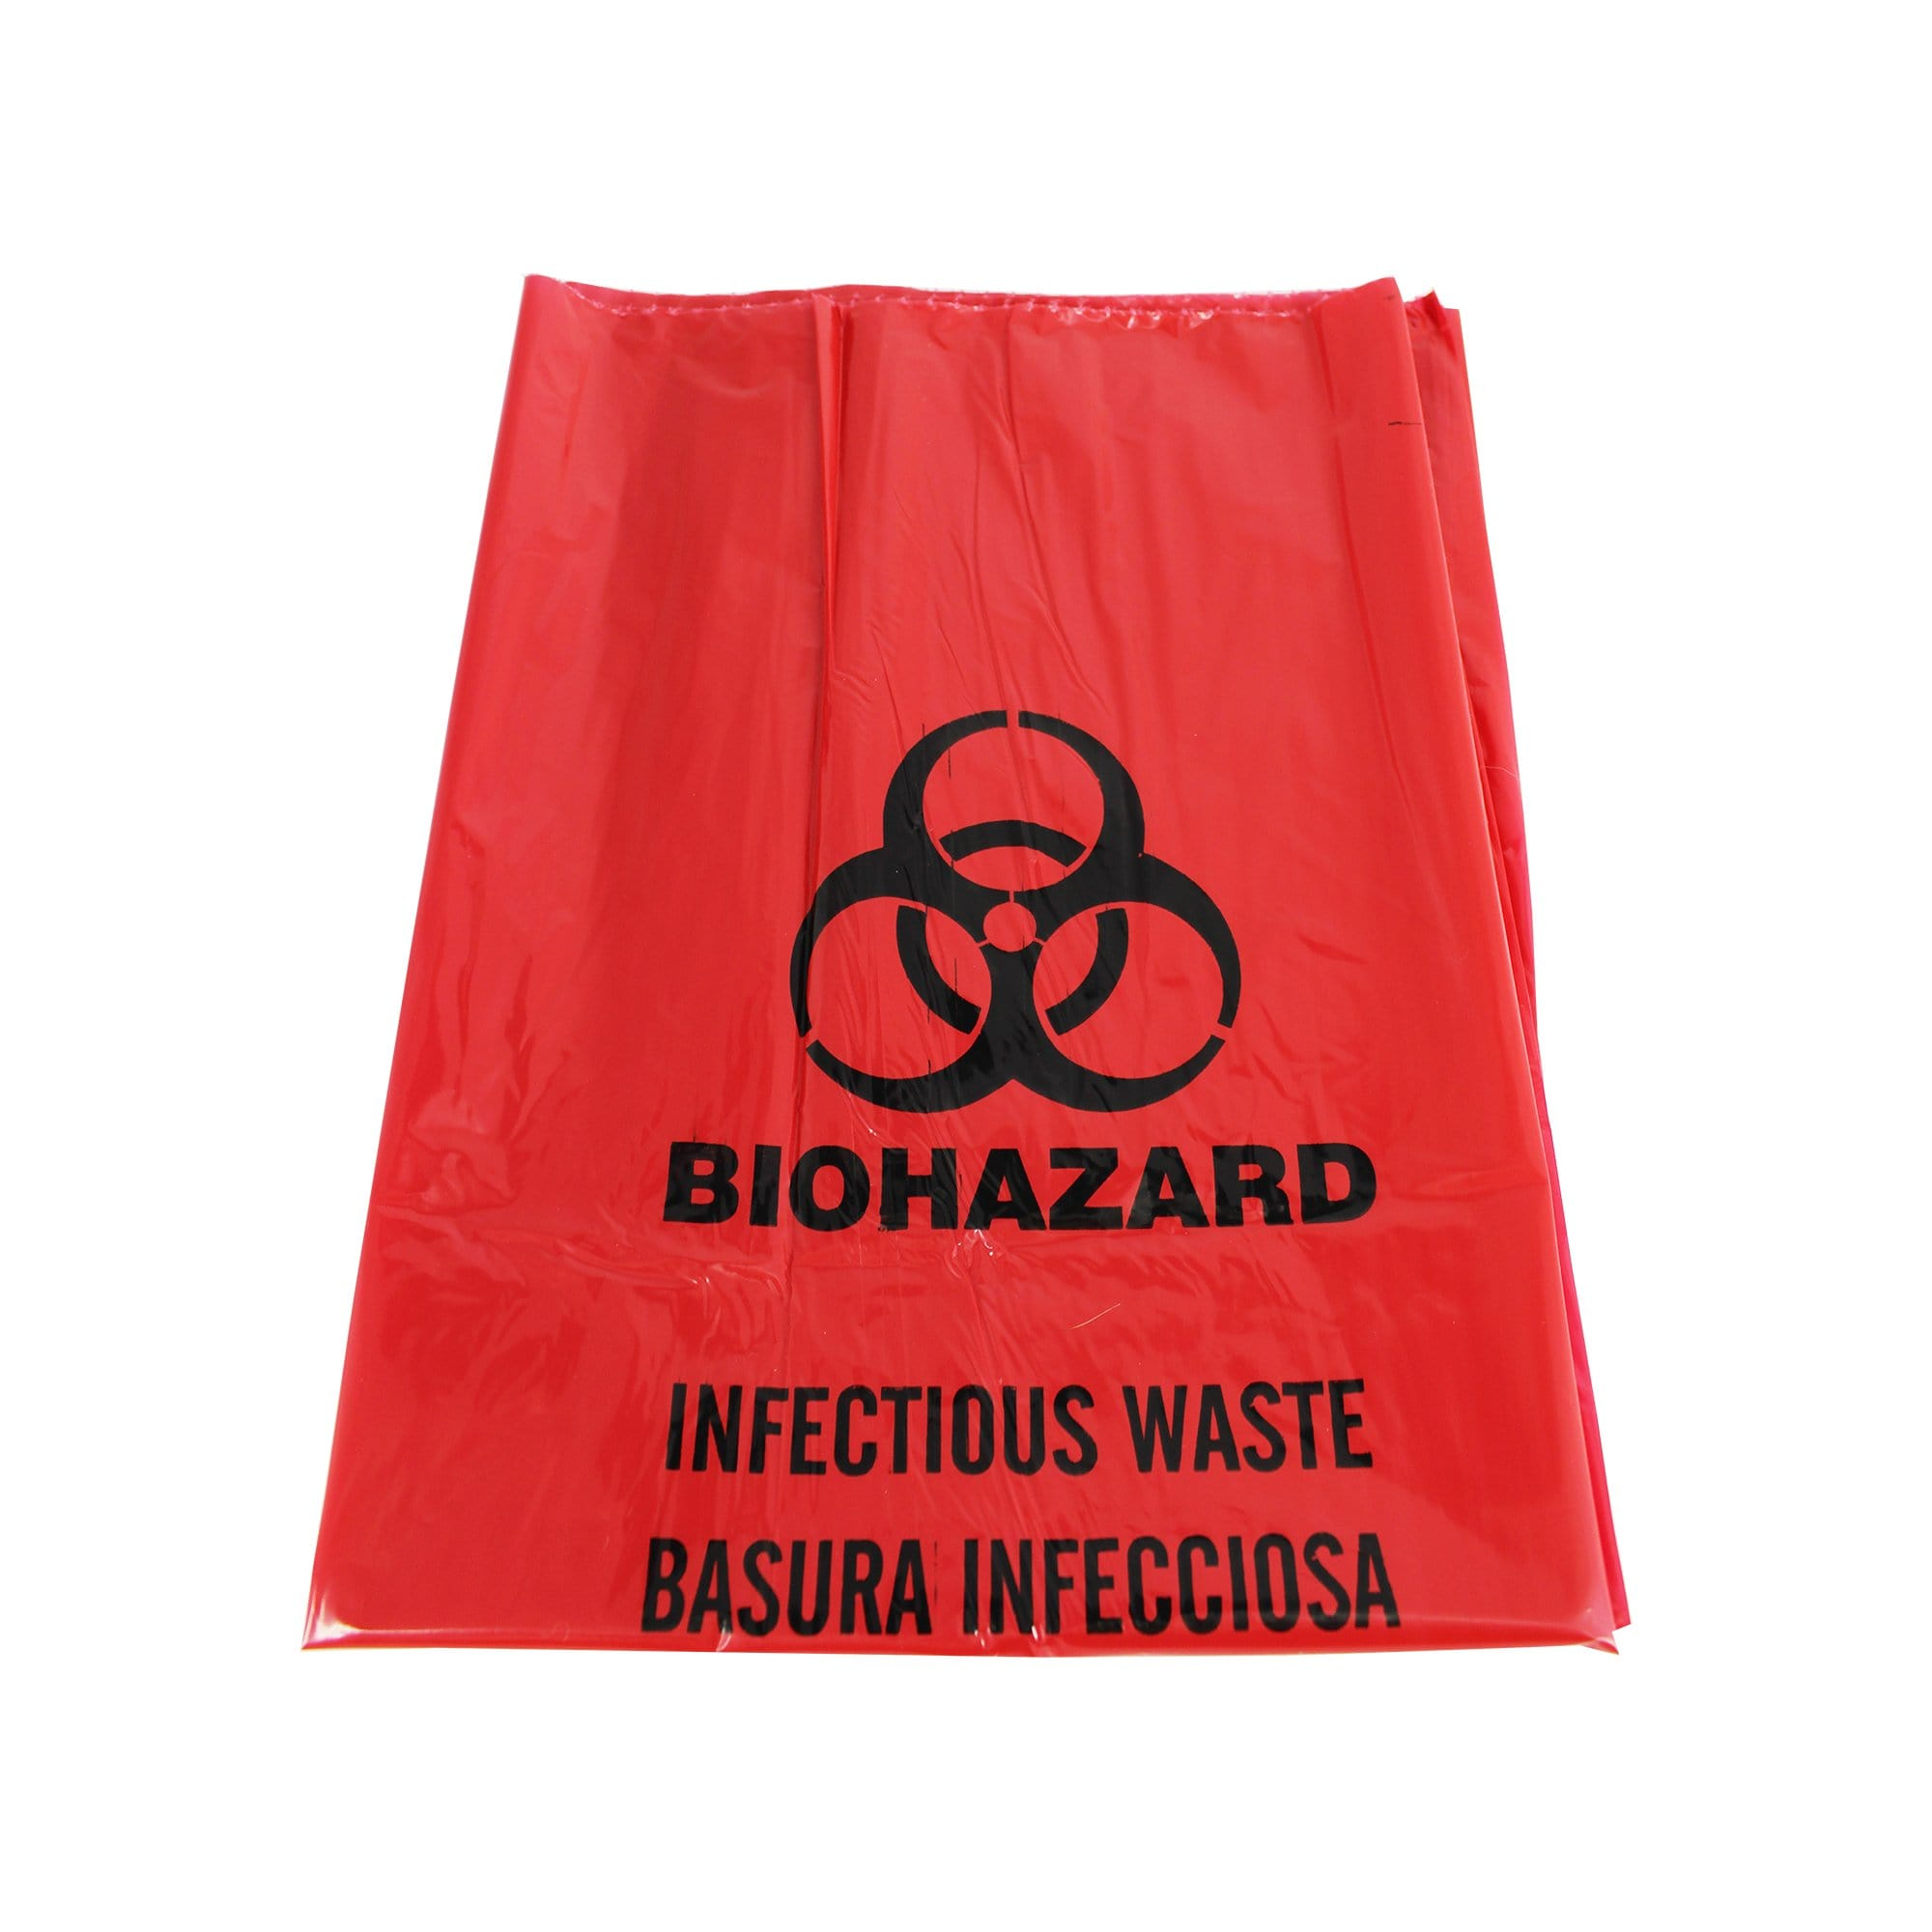 biohazard bag red